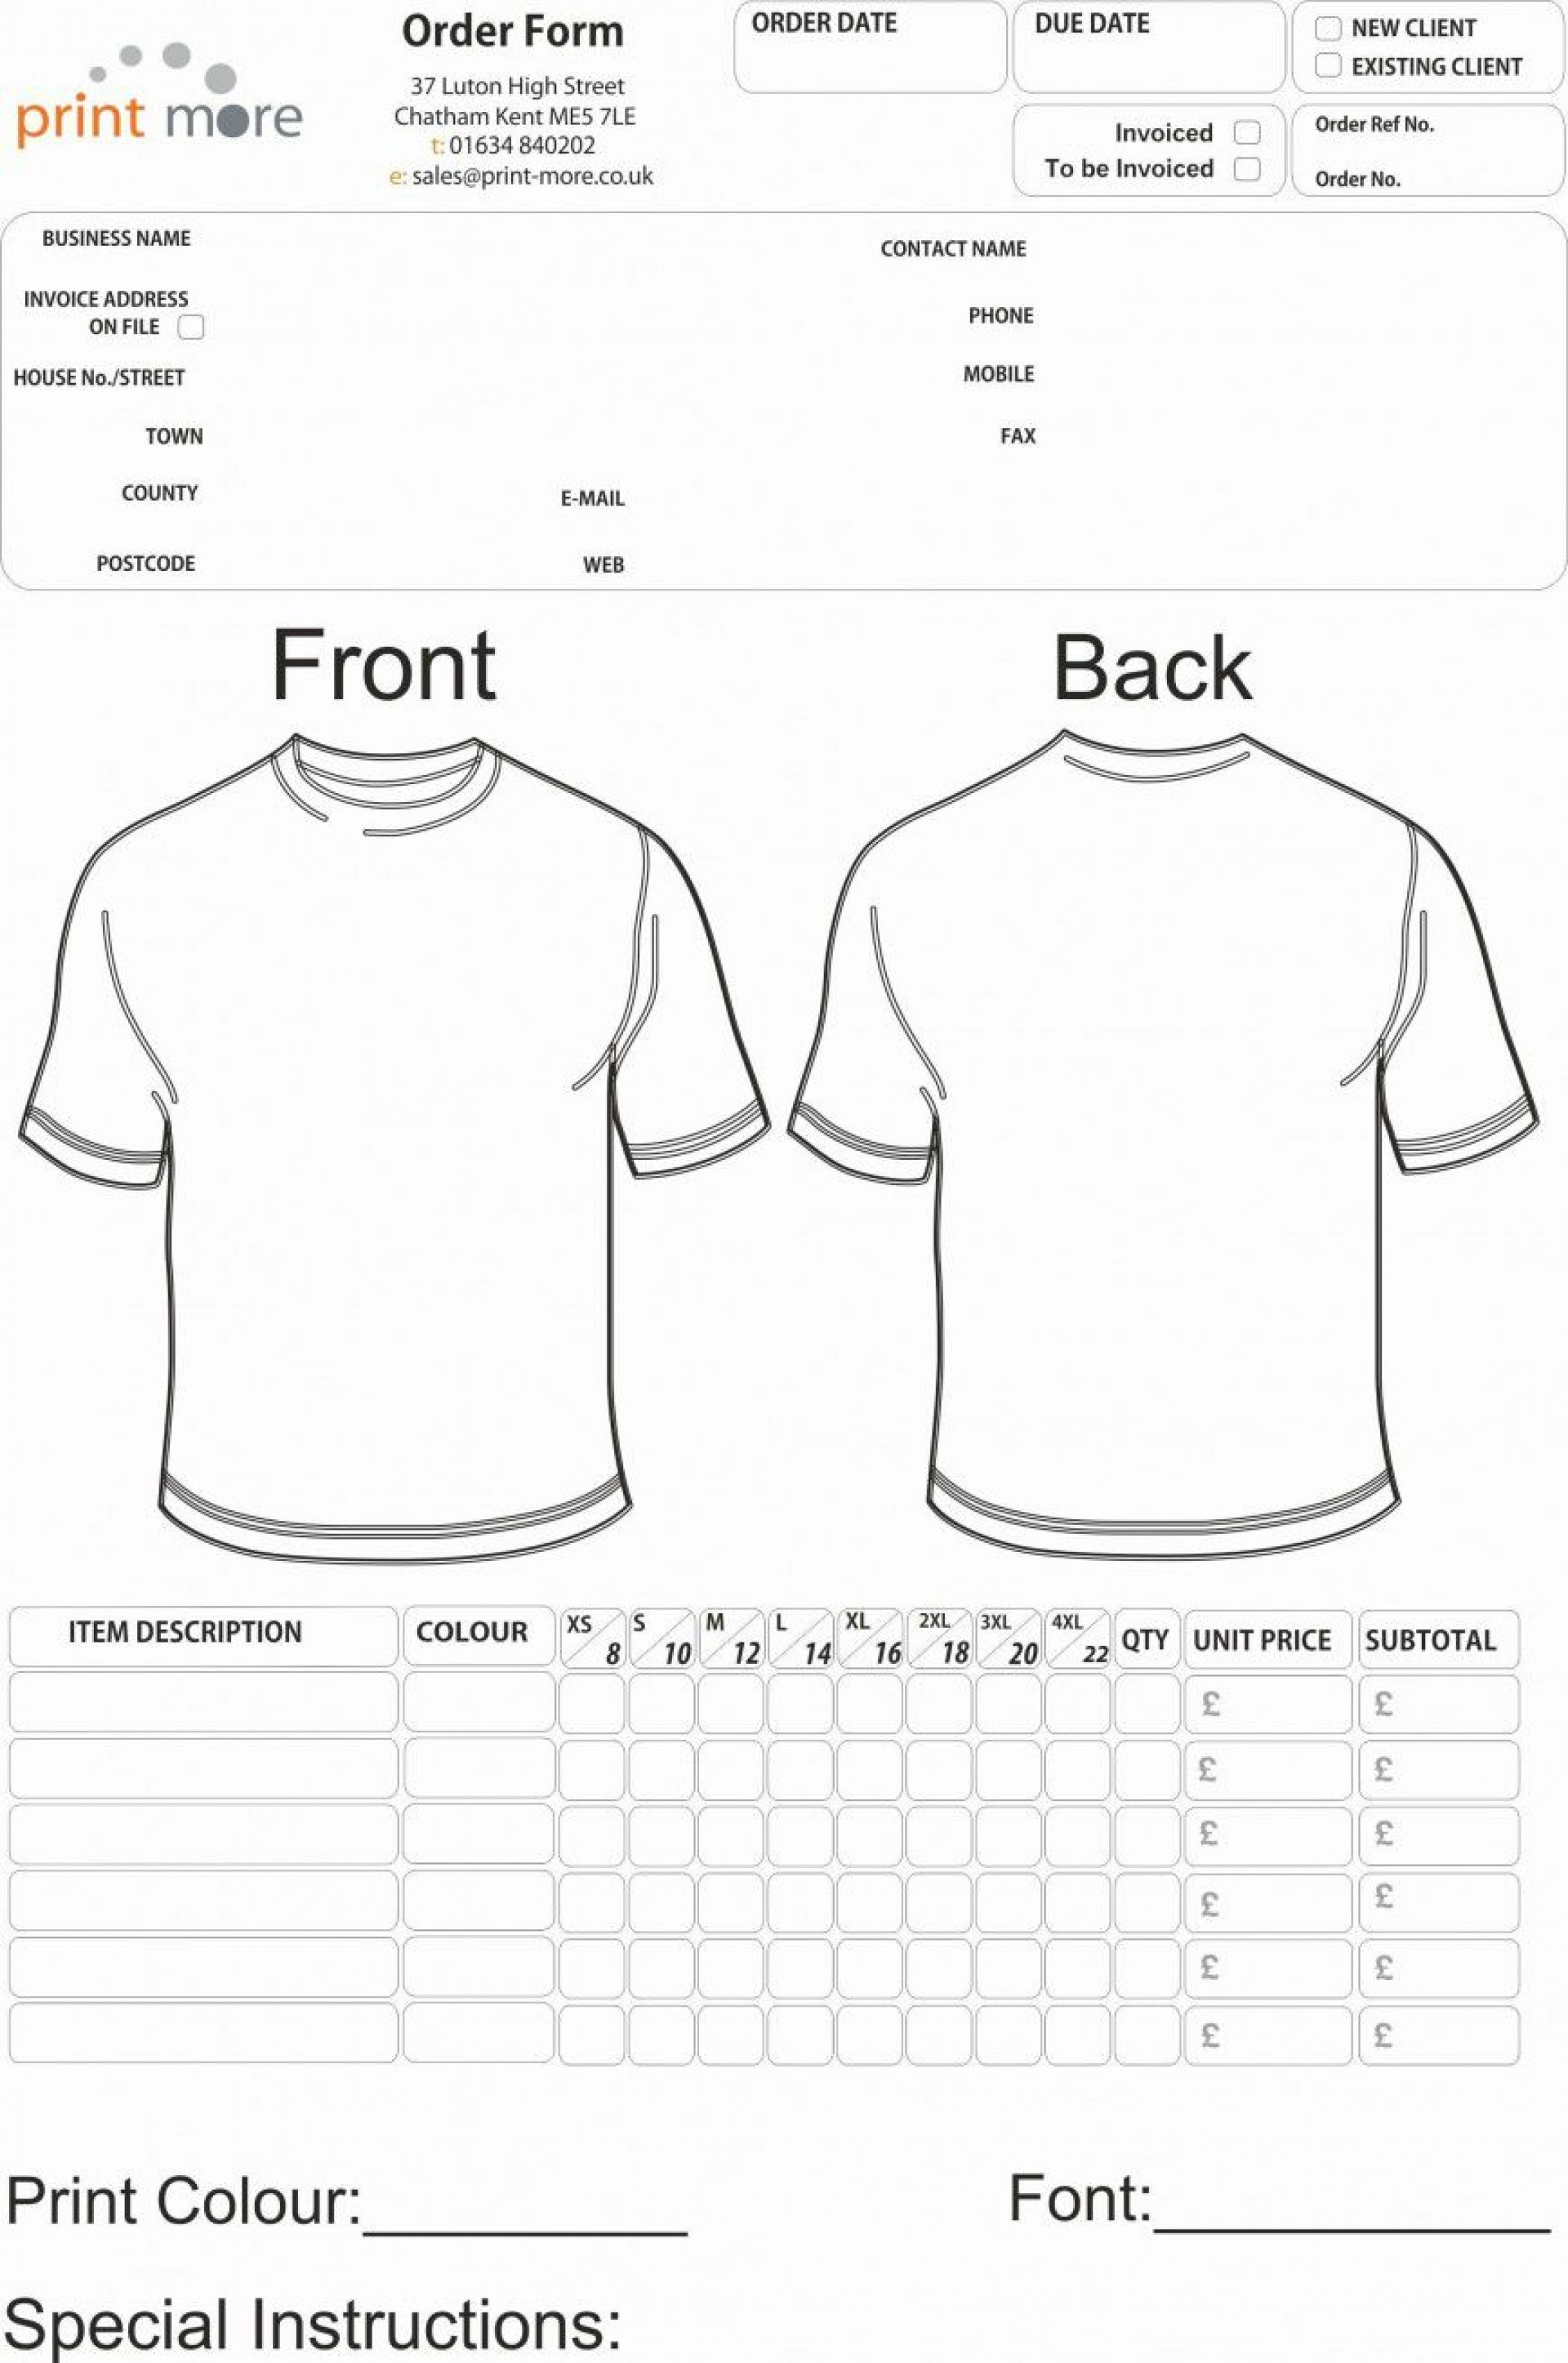 001 Unusual Shirt Order Form Template Sample  Templates T Microsoft Word Excel Download Tee1920